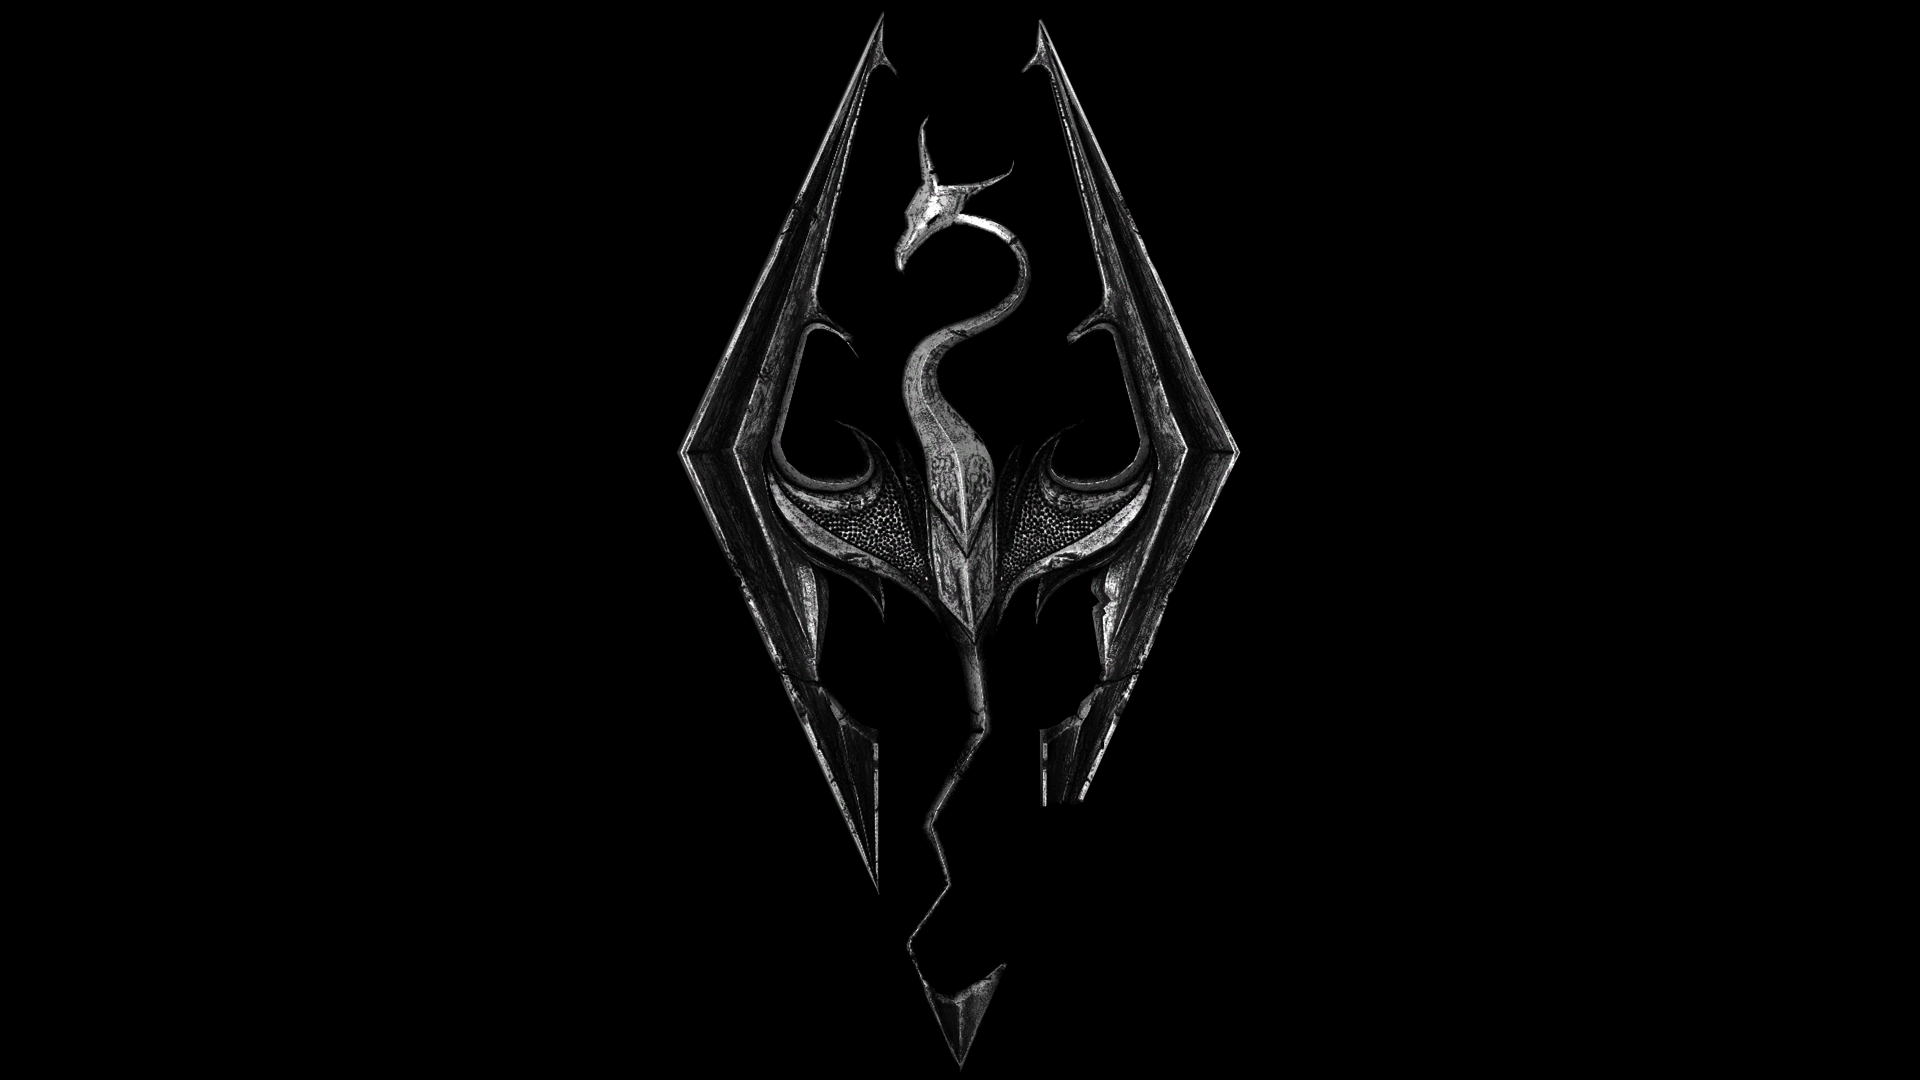 Skyrim Logo wallpaper.